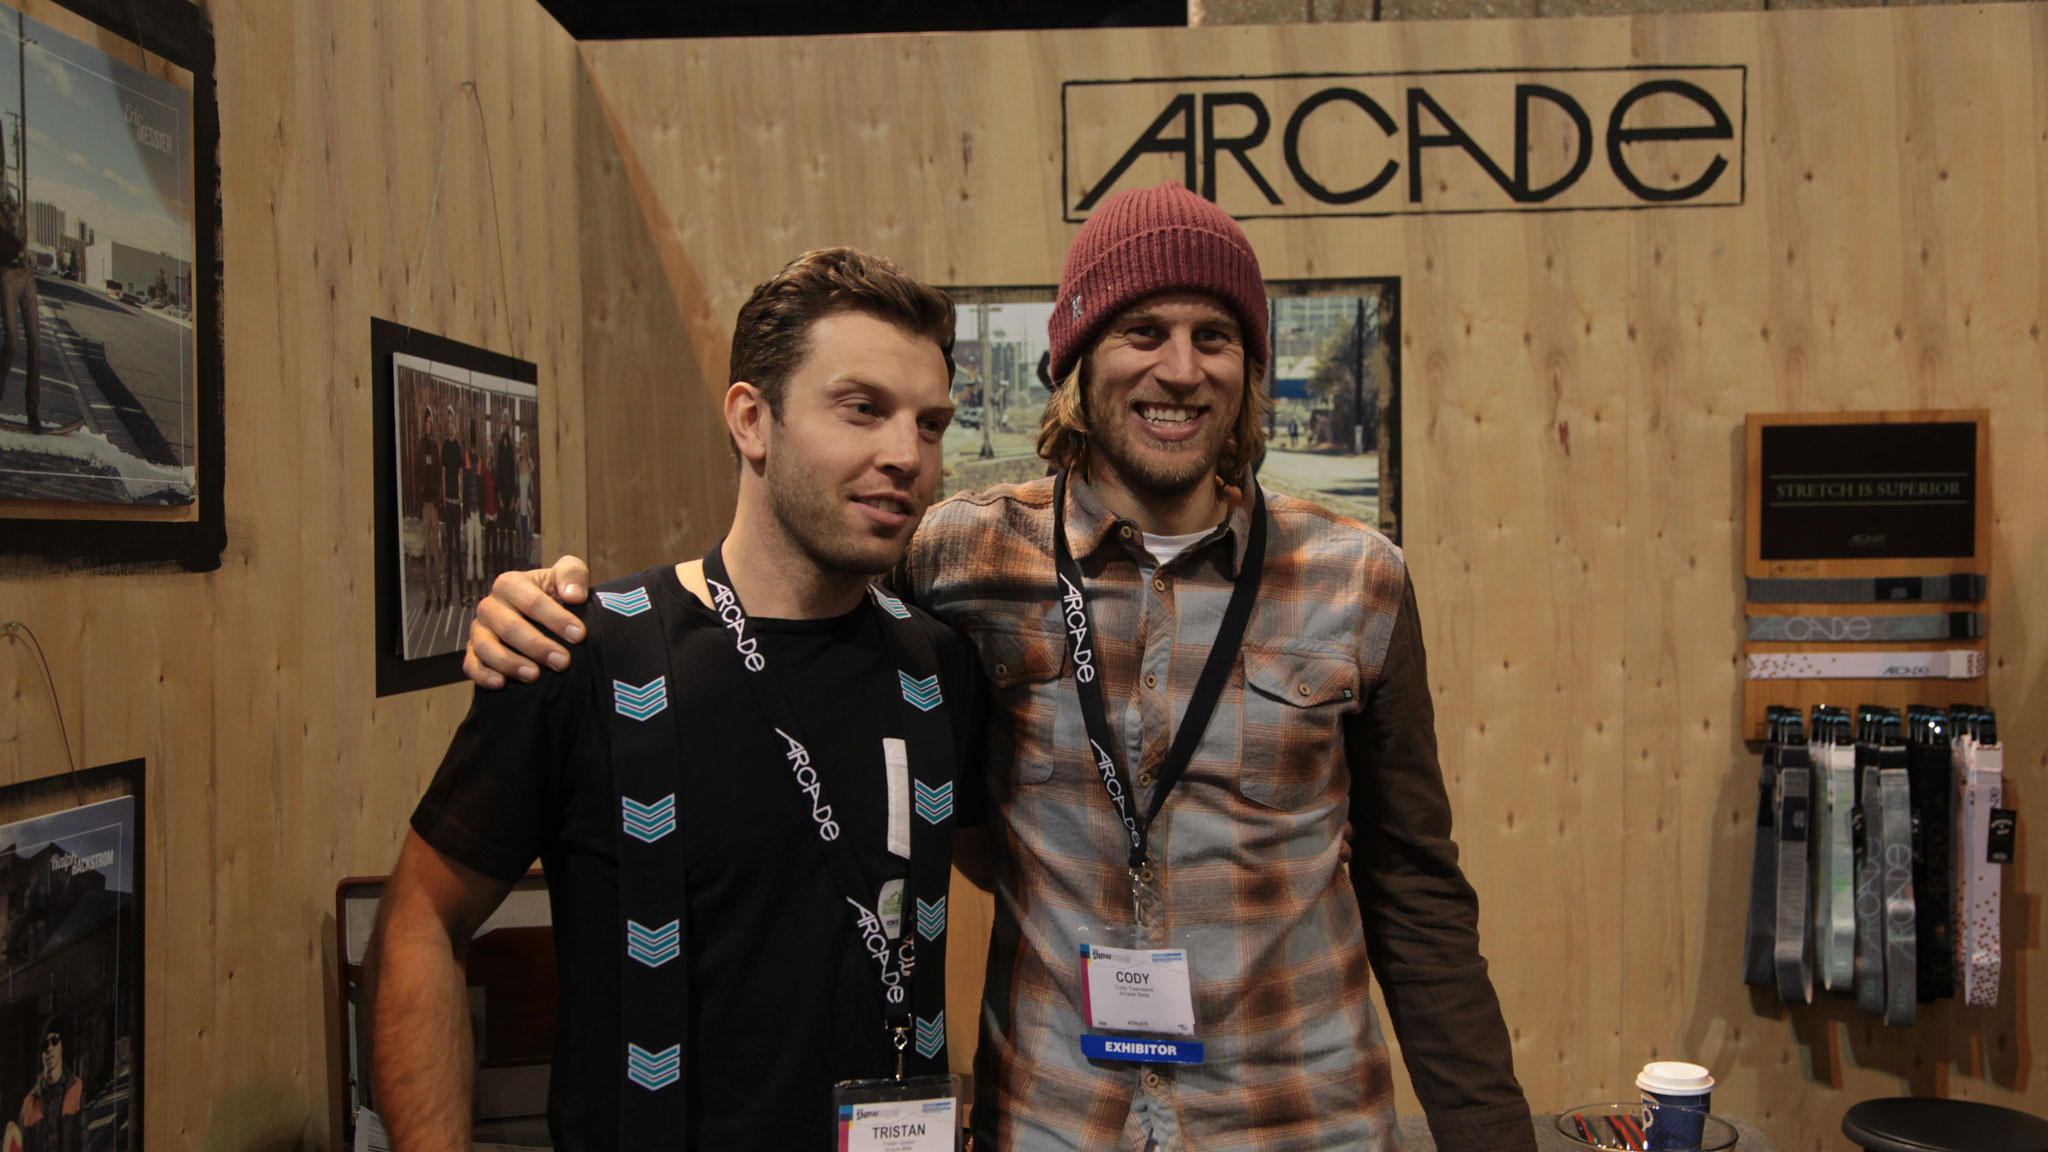 Pro skier Cody Townsend (right) and Tristan Queen, co-founders of Arcade Belts.